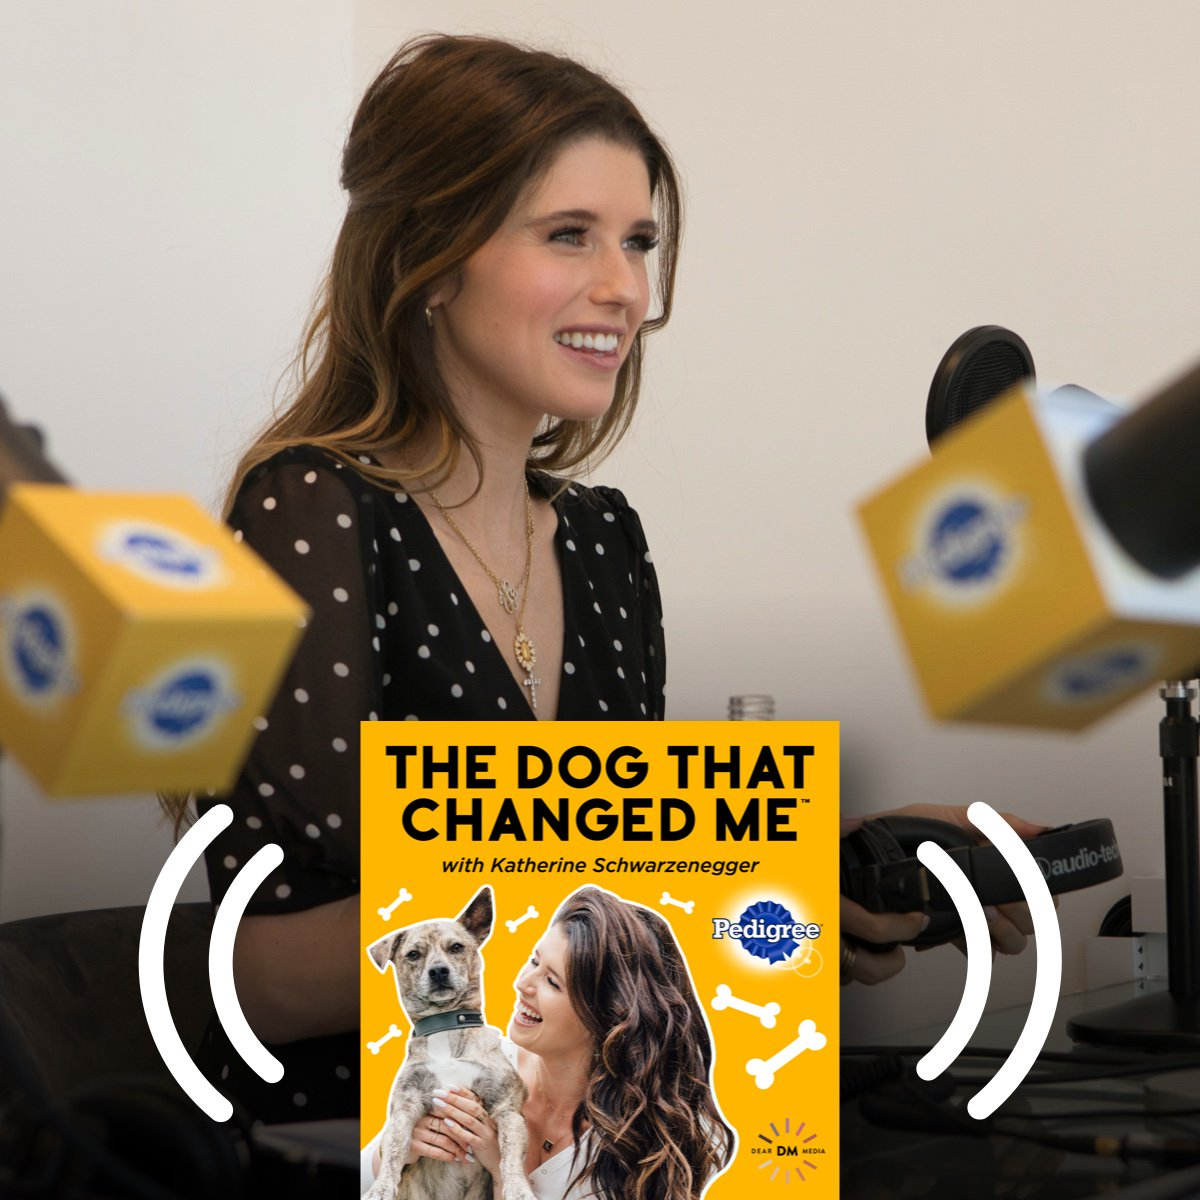 """Listen to stories from Julianne Hough, LeAnn Rimes & more about the life-changing power of adopting a pet in the new podcast, """"The Dog That Changed Me,"""" hosted by @KSchwarzenegger & sponsored by PEDIGREE. New episodes now available at https://t.co/G2N3Io0xiB. #EveryPupsSuperpower https://t.co/fPZGzbPkBI"""